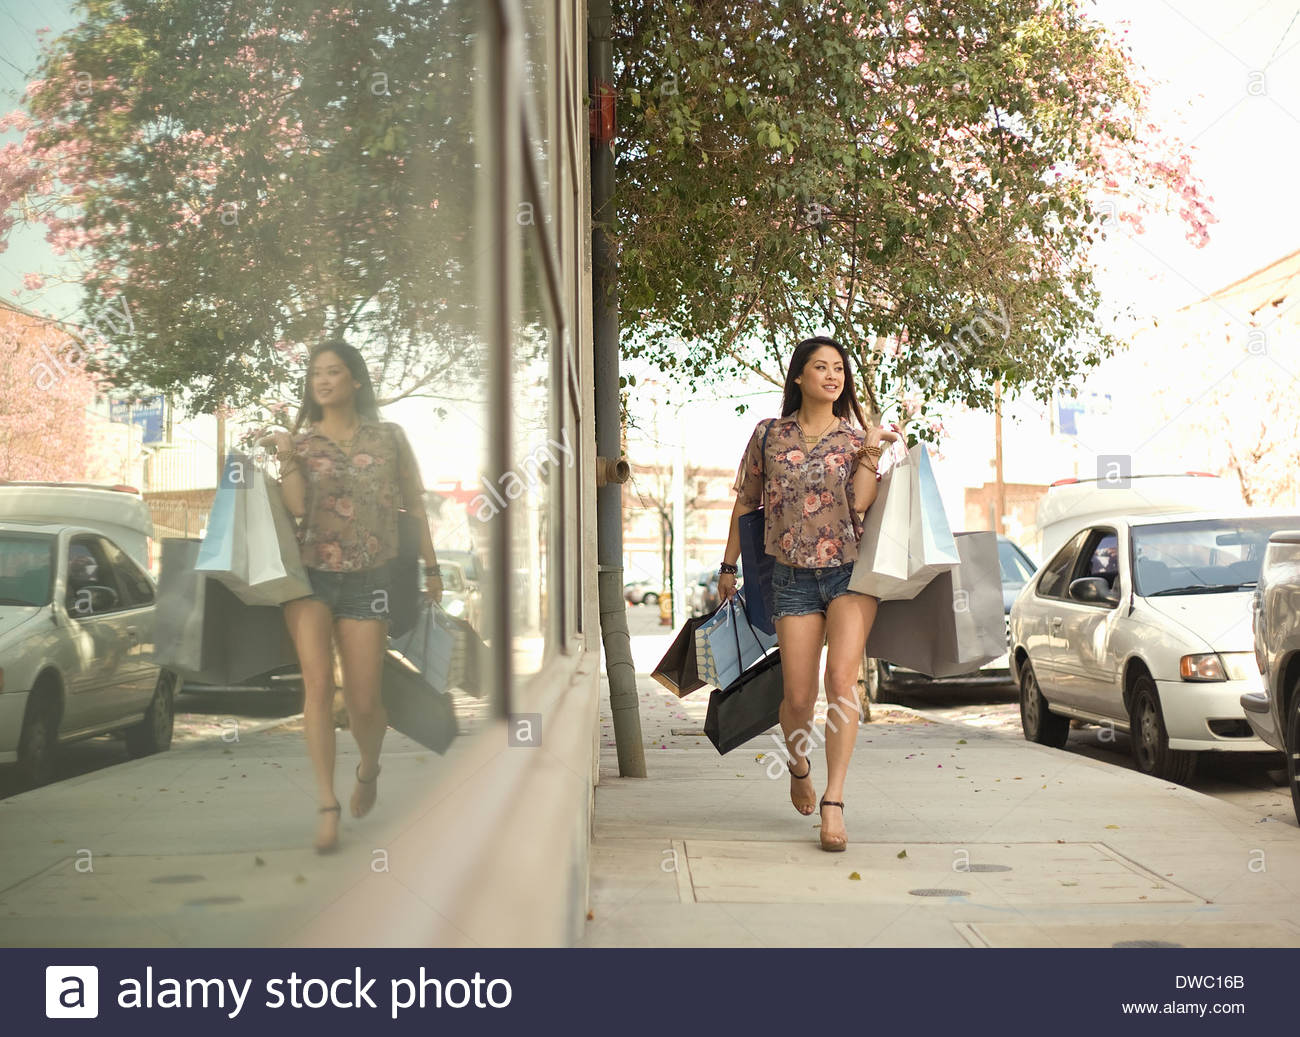 Young woman walking down street with shopping bags Stock Photo